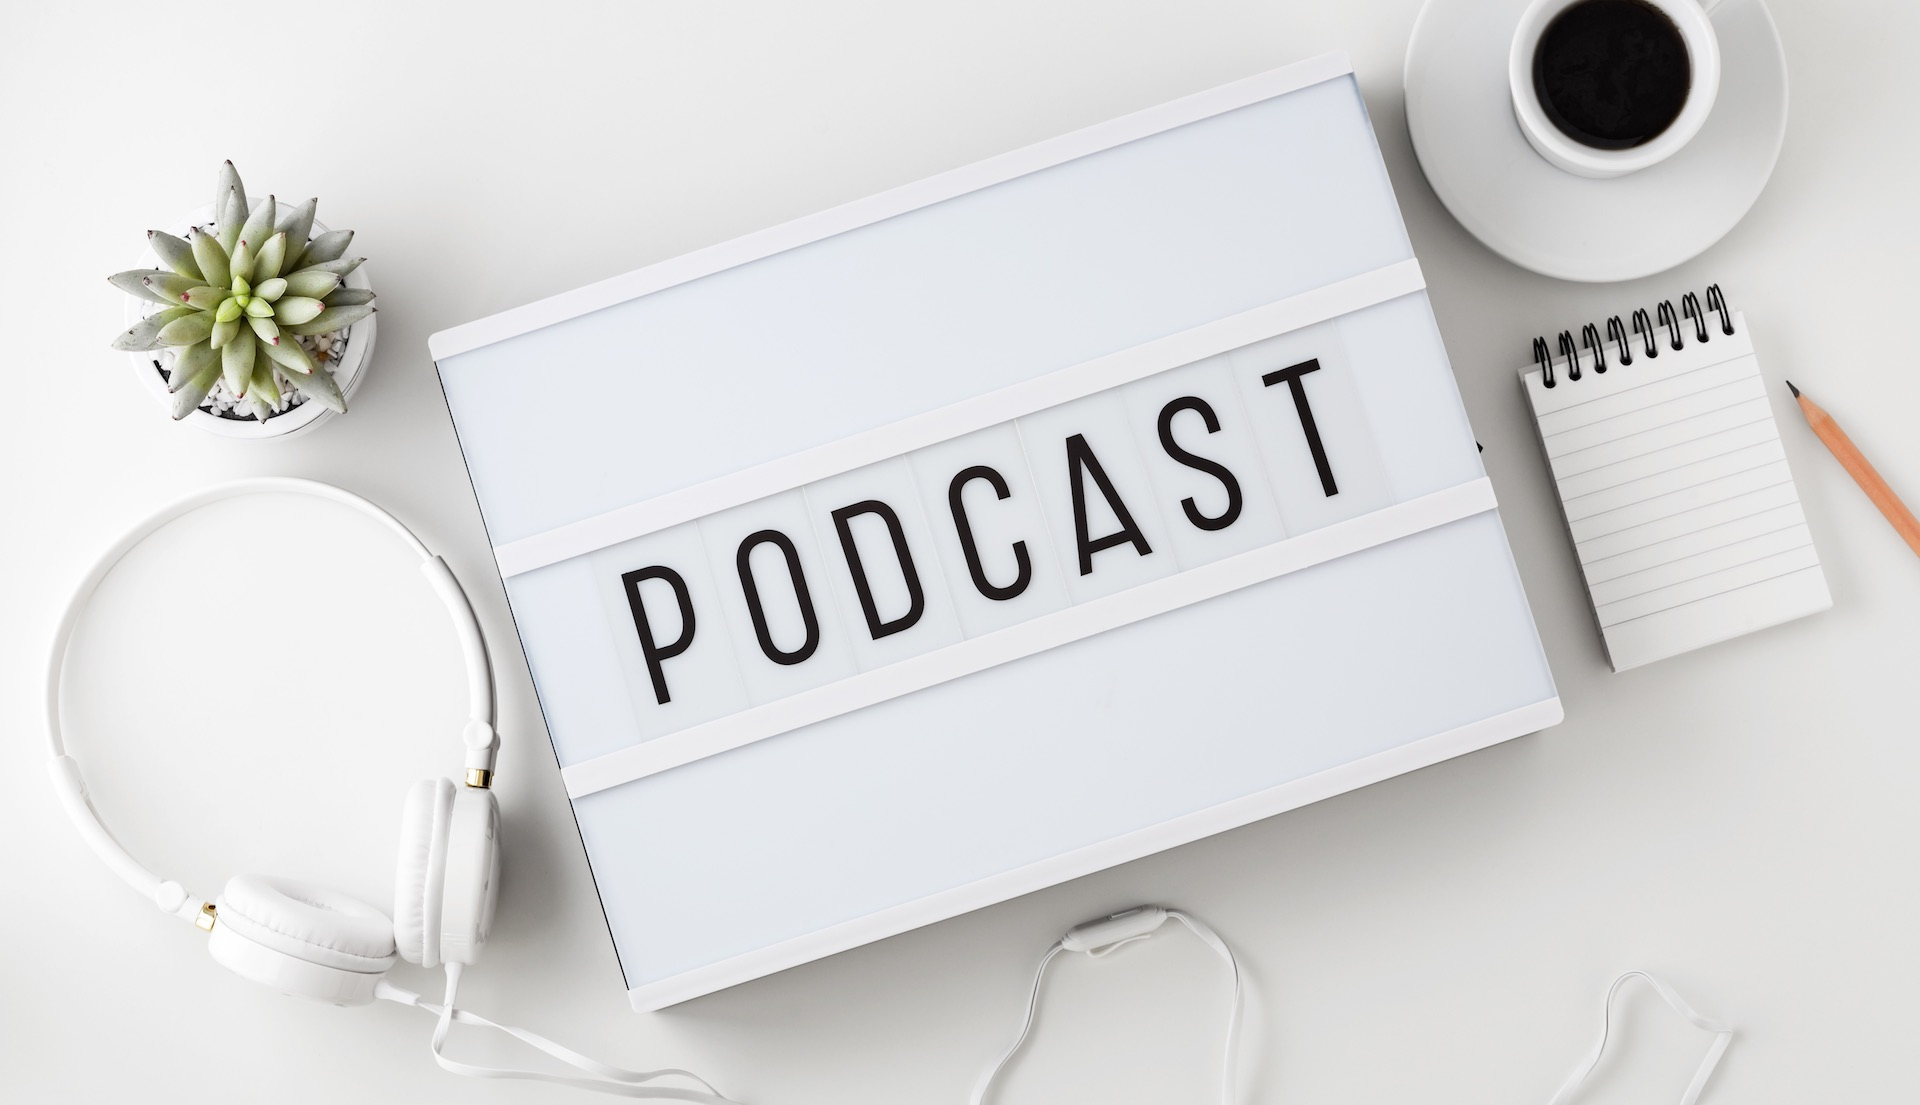 Podcasts: When in doubt, just press play